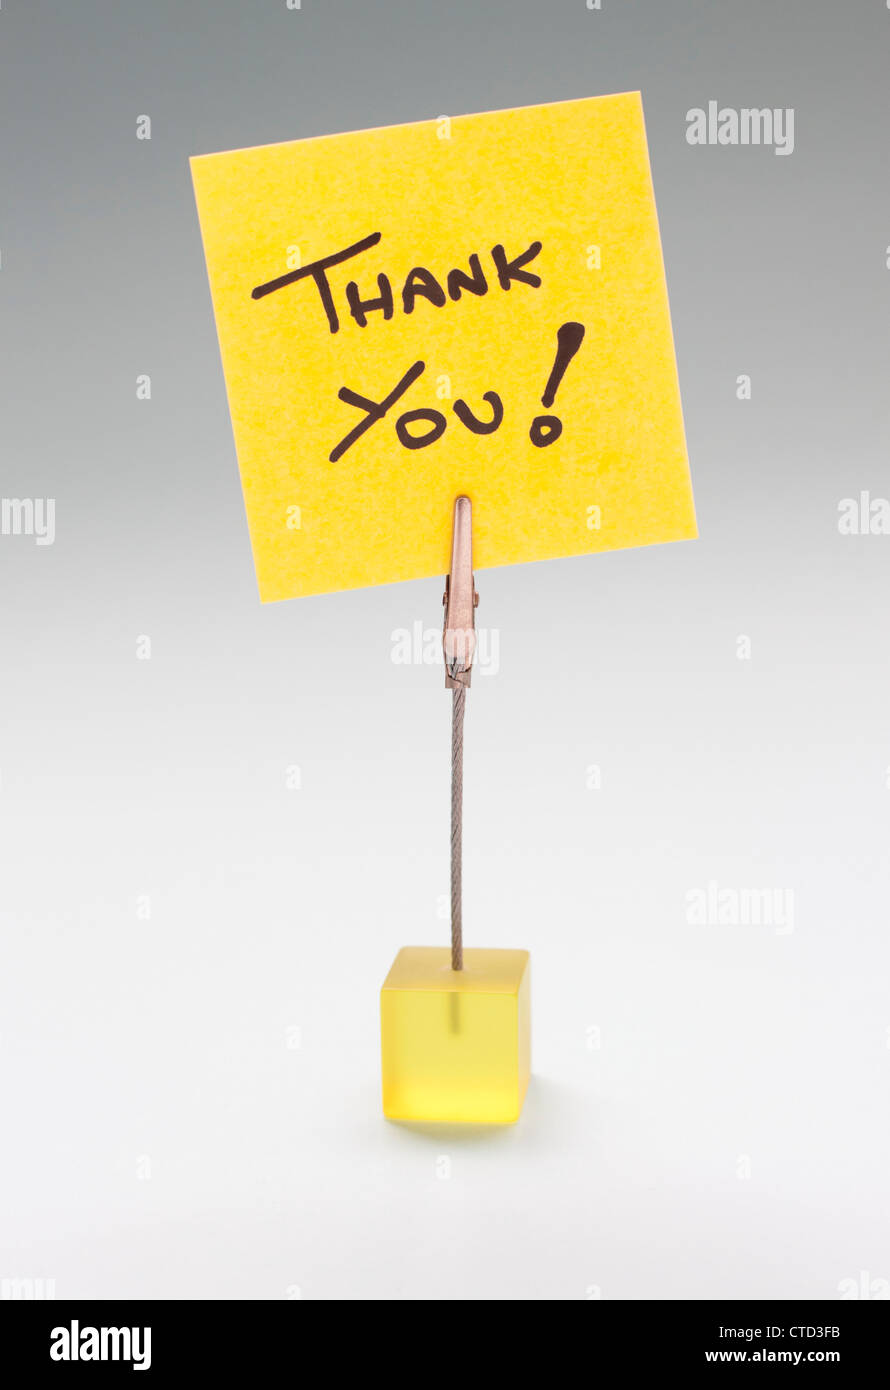 Thank you note - Stock Image